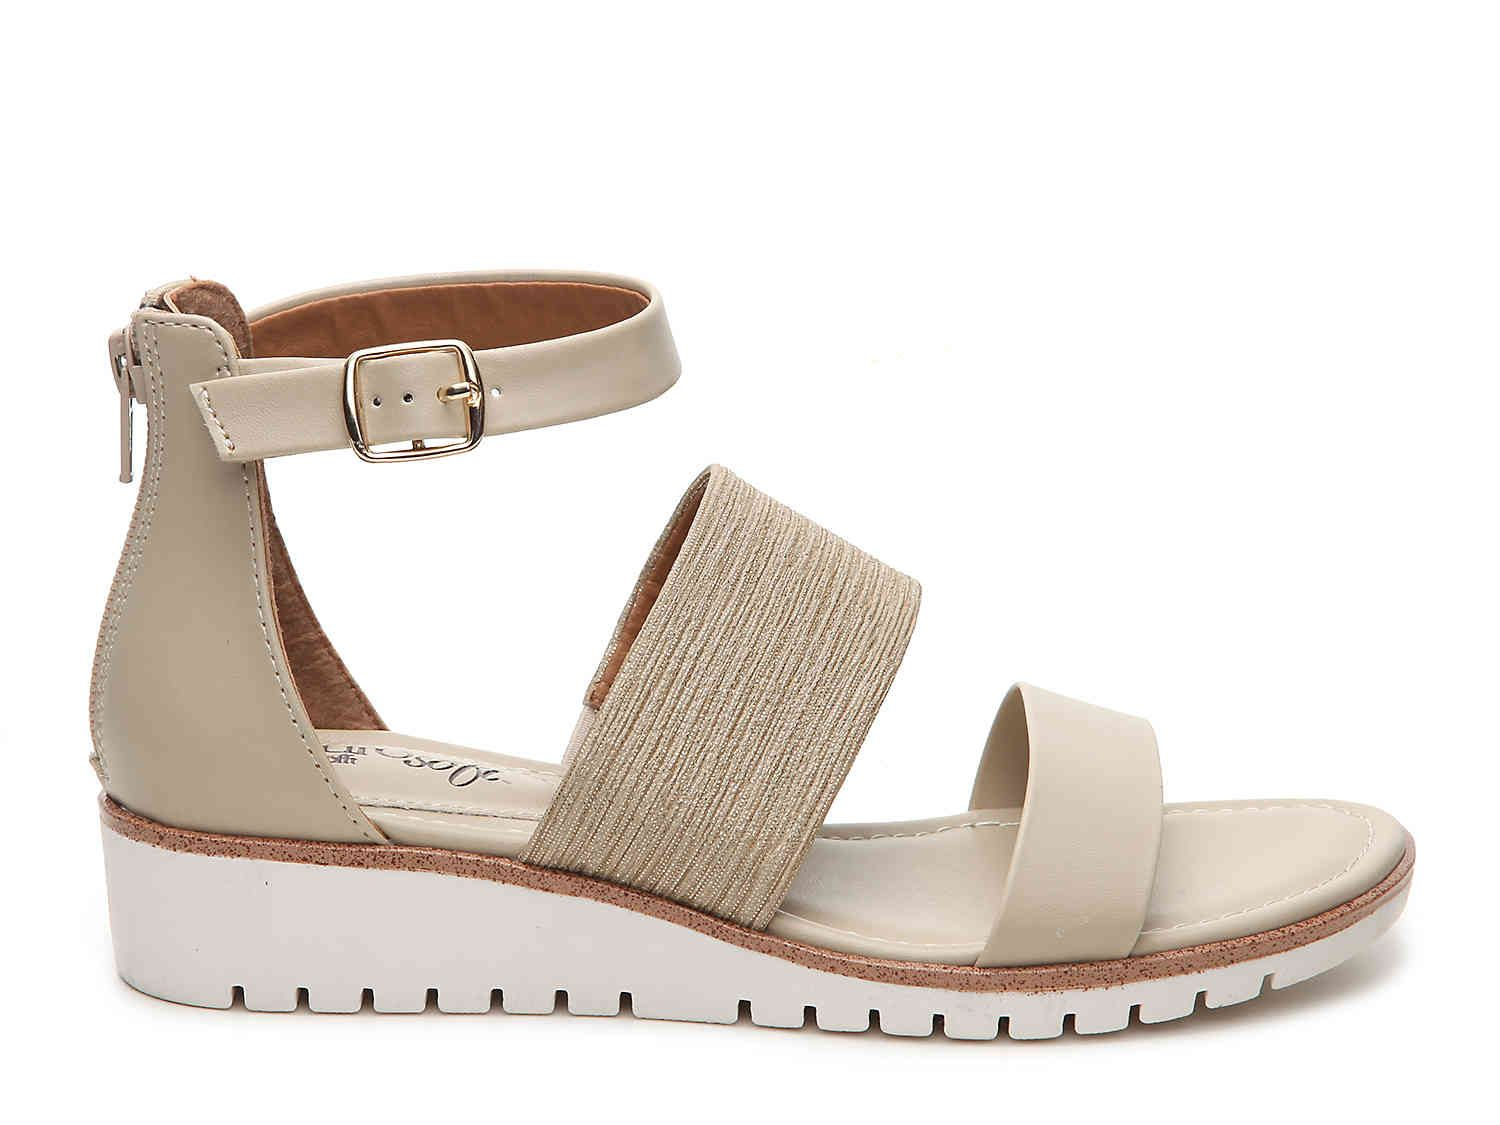 Eurosoft Cadori Wedge Sandal Women's Shoes | DSW